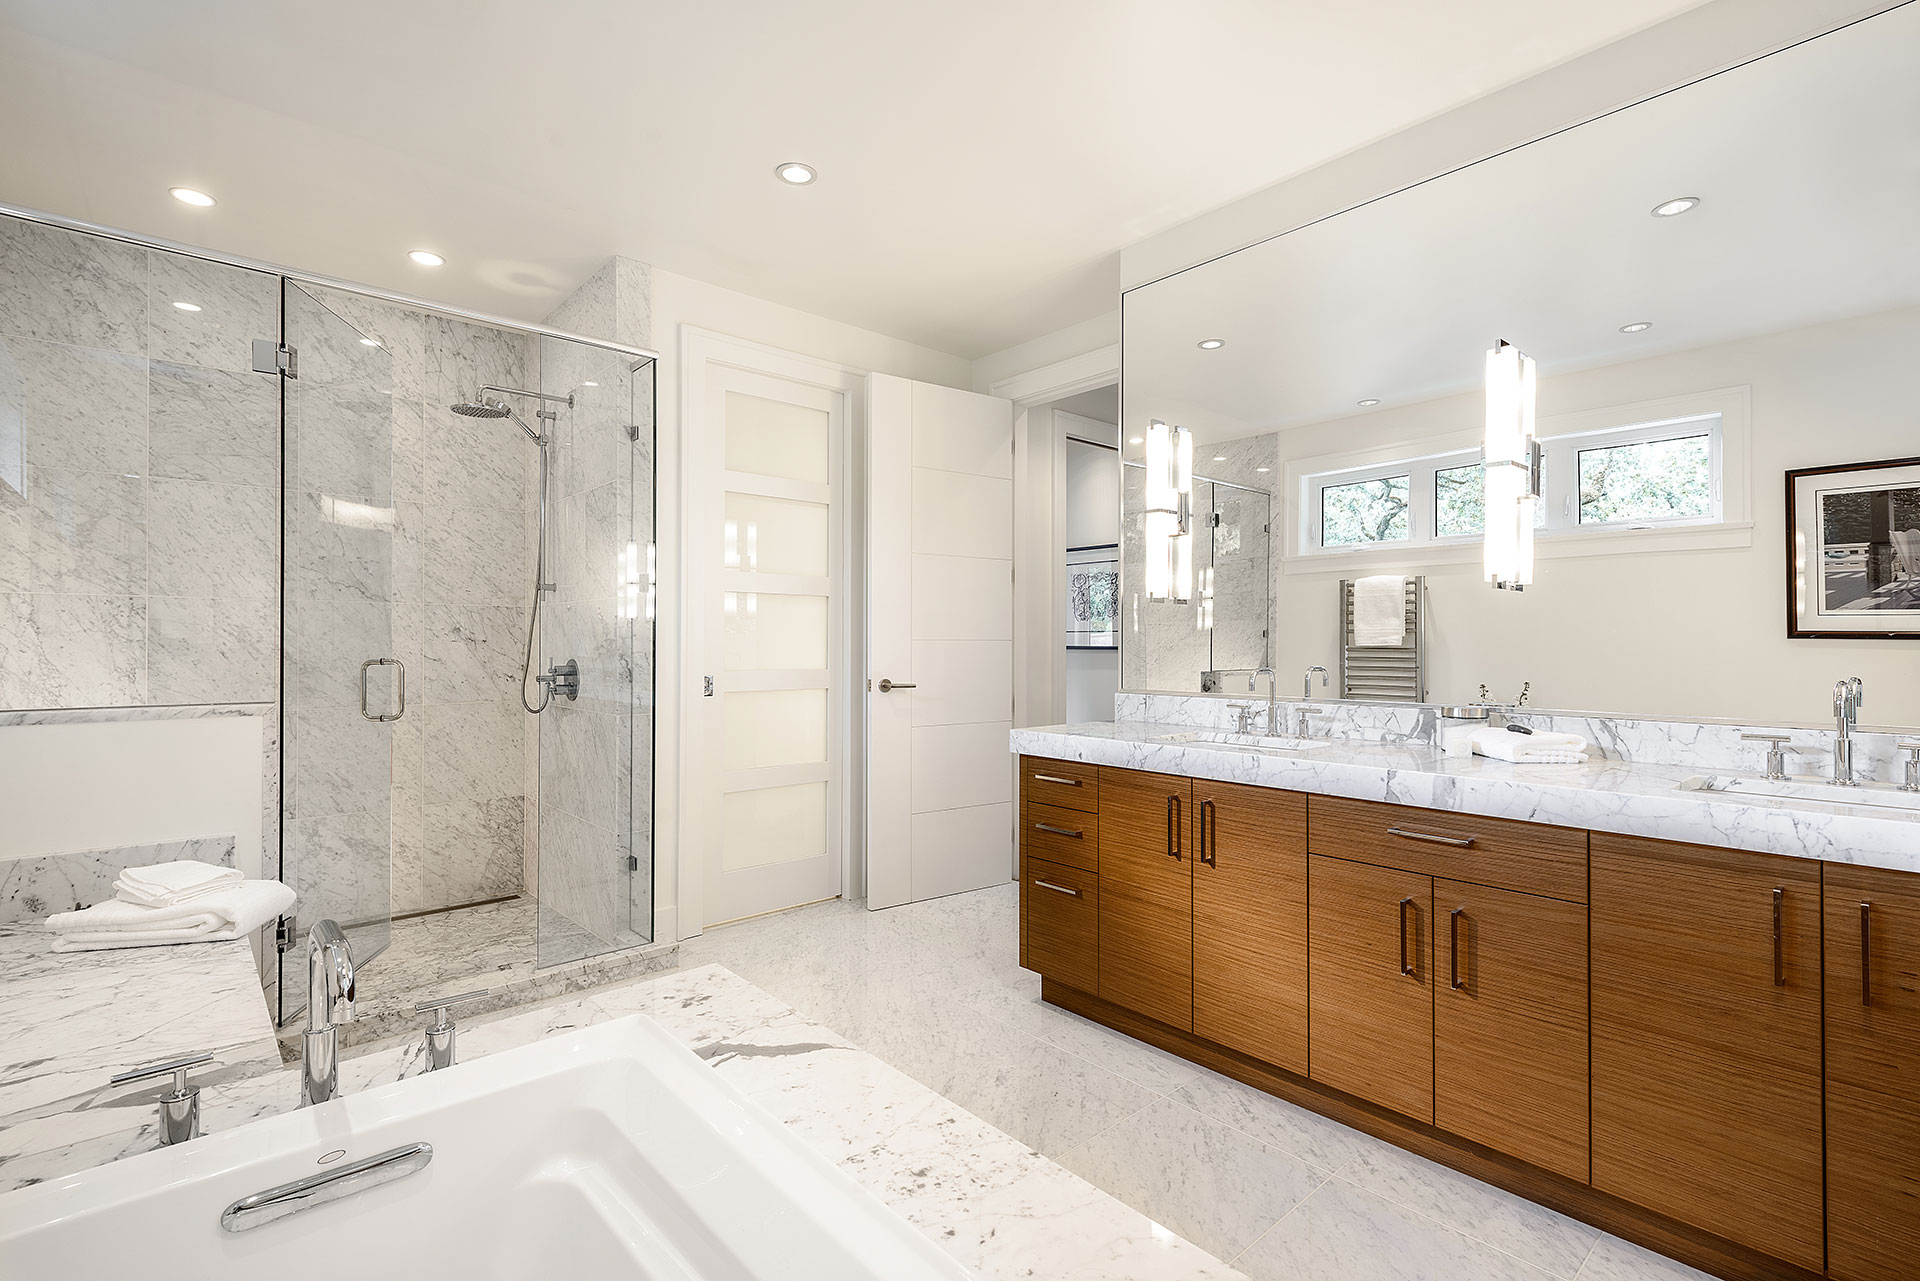 Picture Gallery Of Our Custom Glass Showers Bathrooms In Victoria Bc Royal Oak Glass Victoria